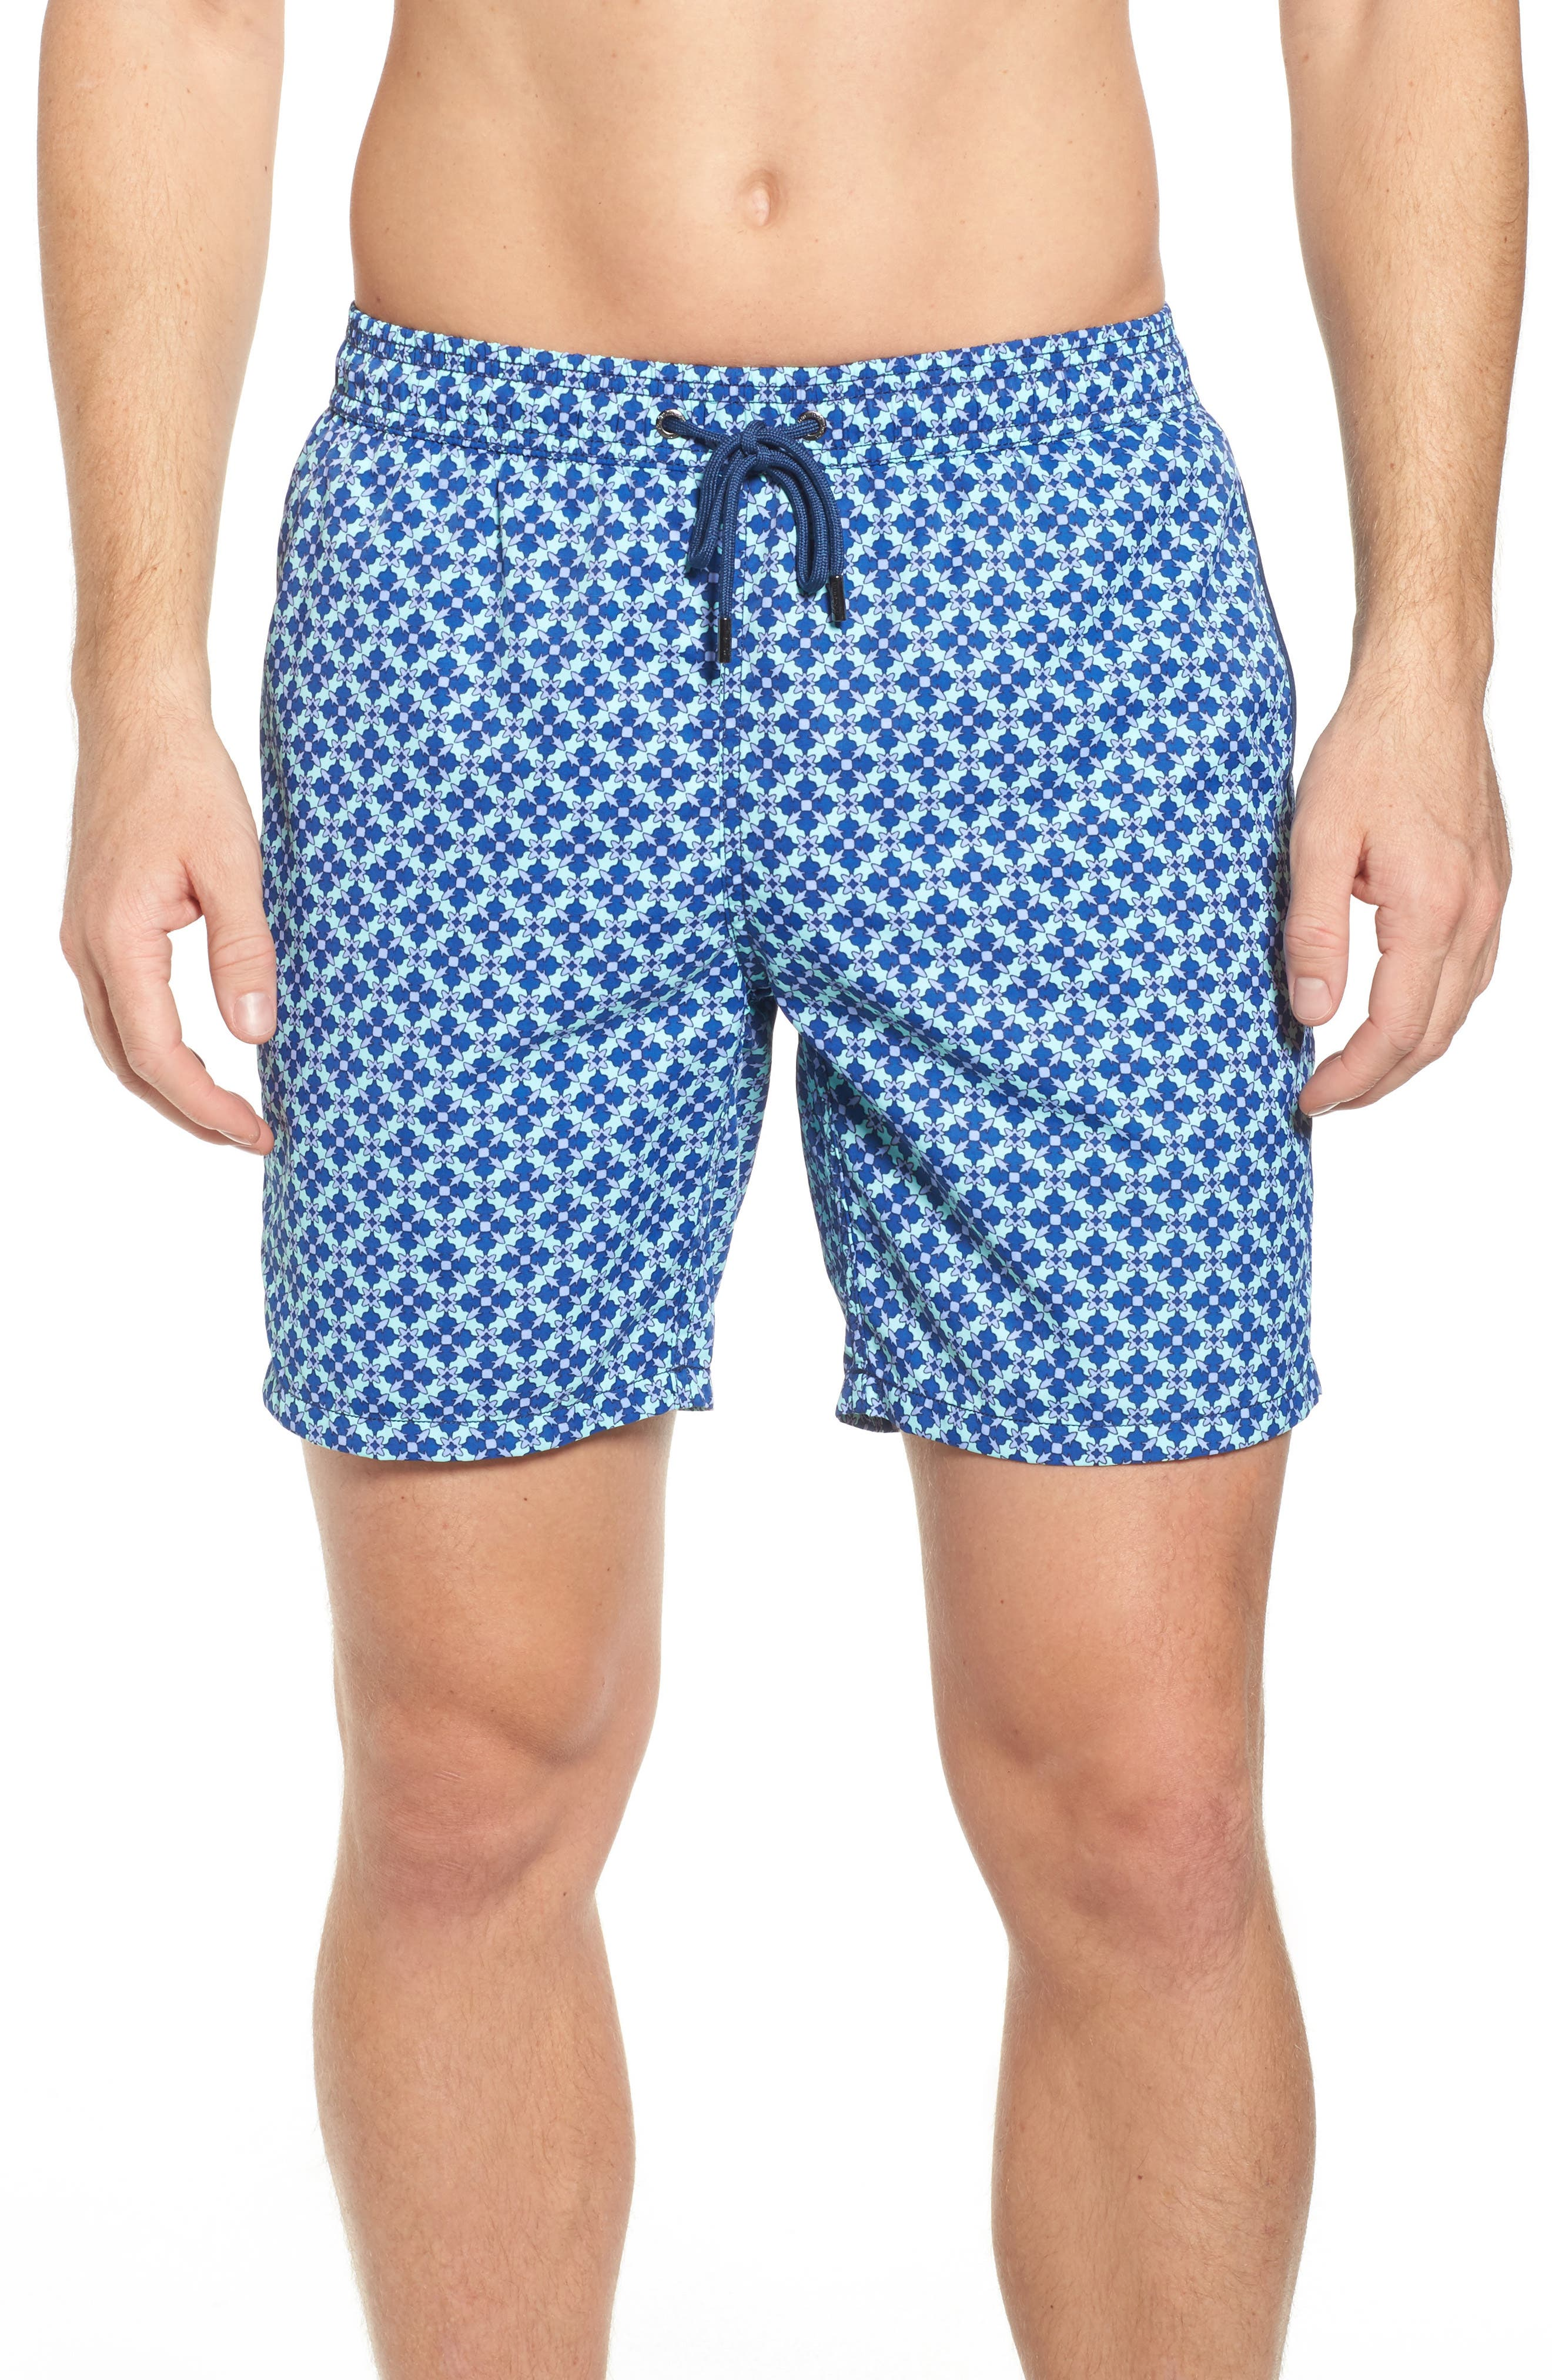 Mr. Swim Mosaic Swim Trunks